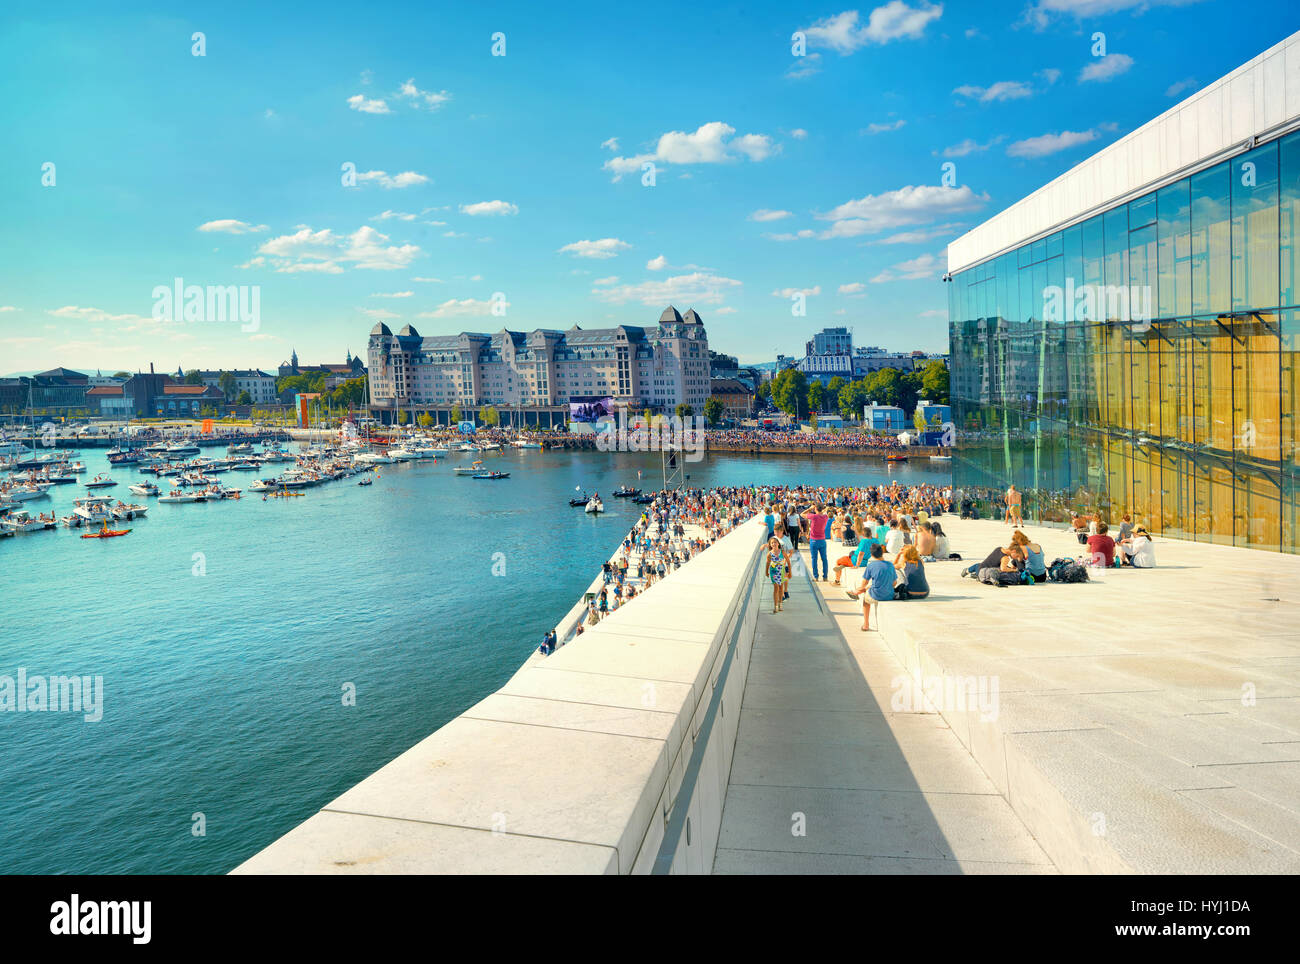 View of waterfront and  harbour with yachts and boats - Stock Image